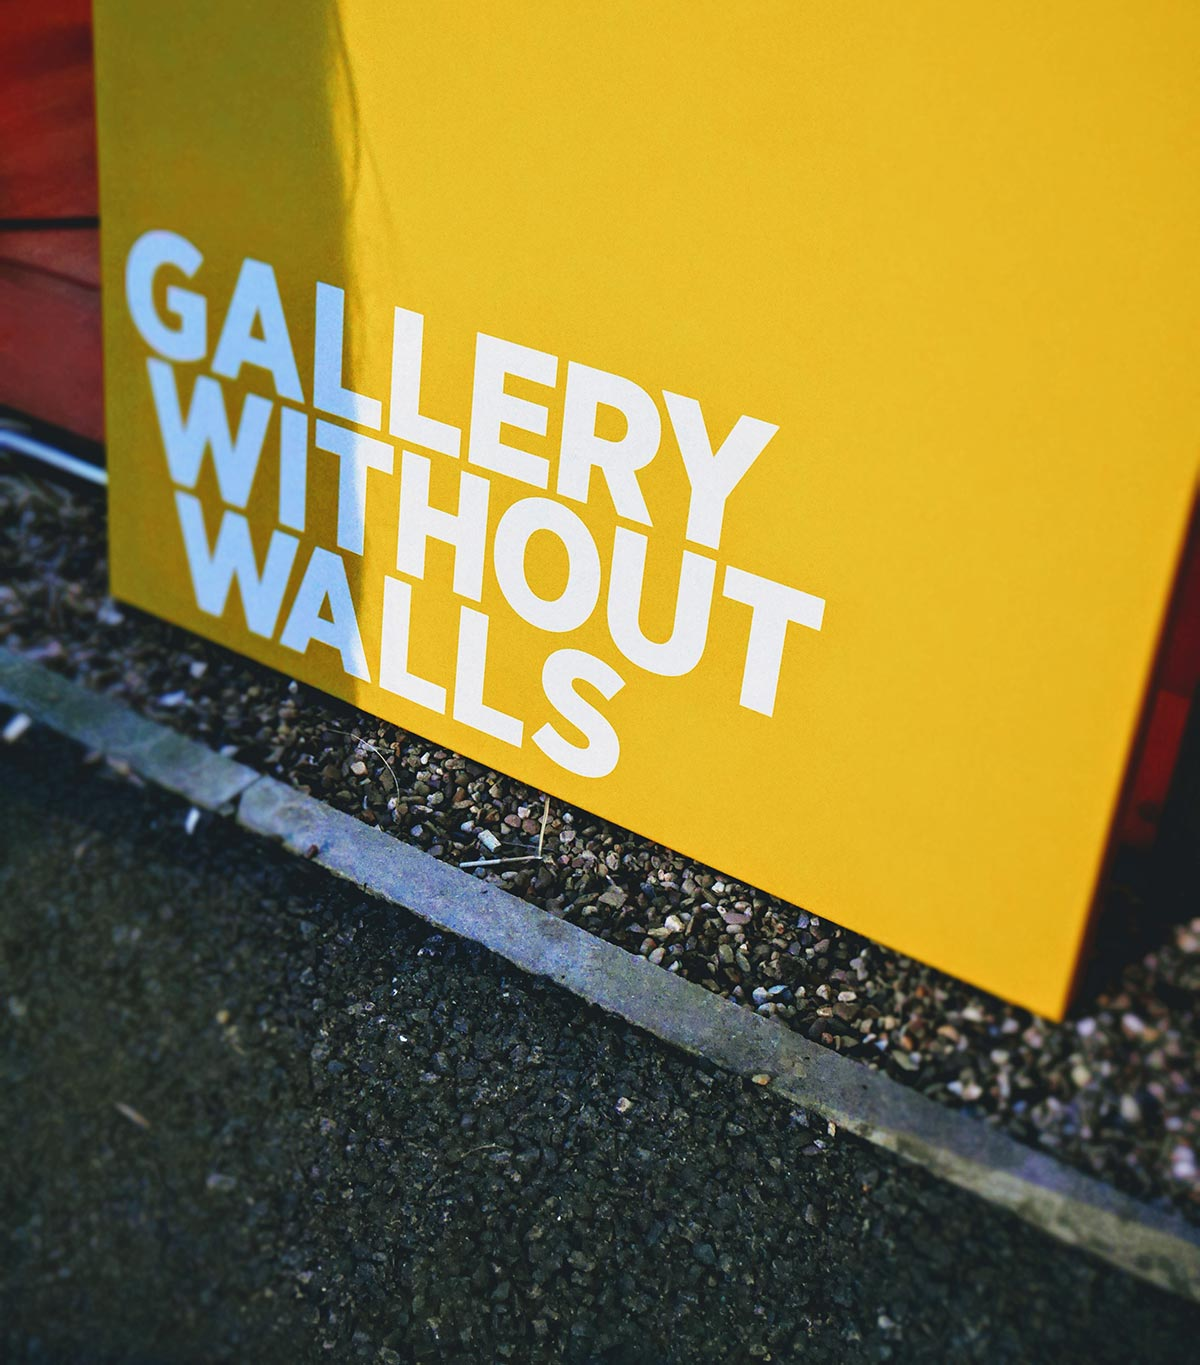 Gallery without walls 001 - recap of the opening night at the LCB